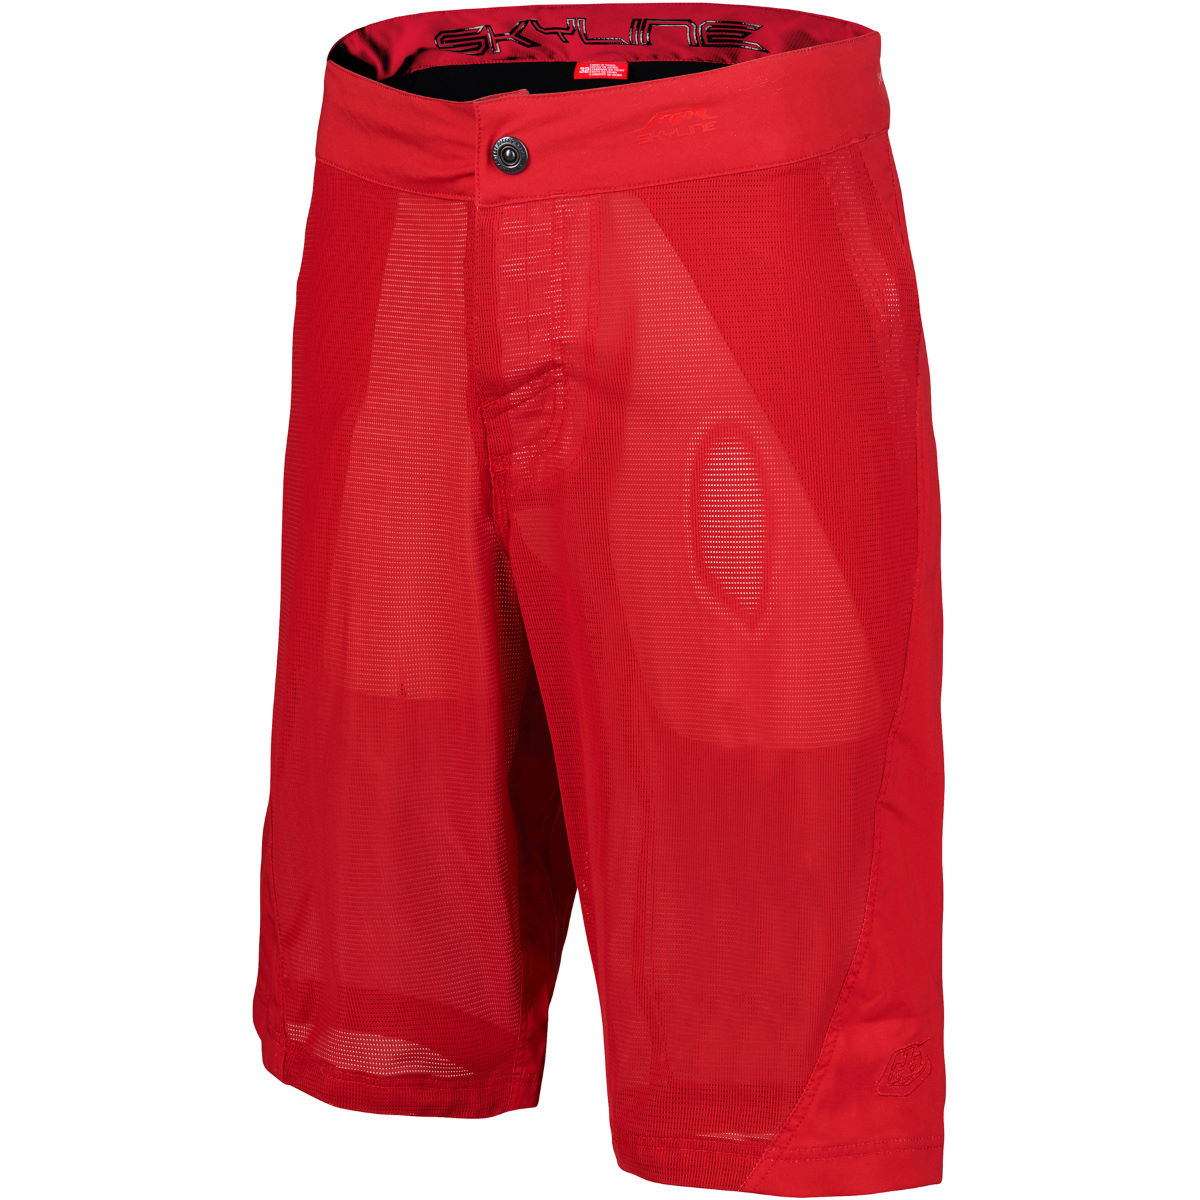 Short Troy Lee Designs Skyline Air - 30 Rouge Shorts VTT